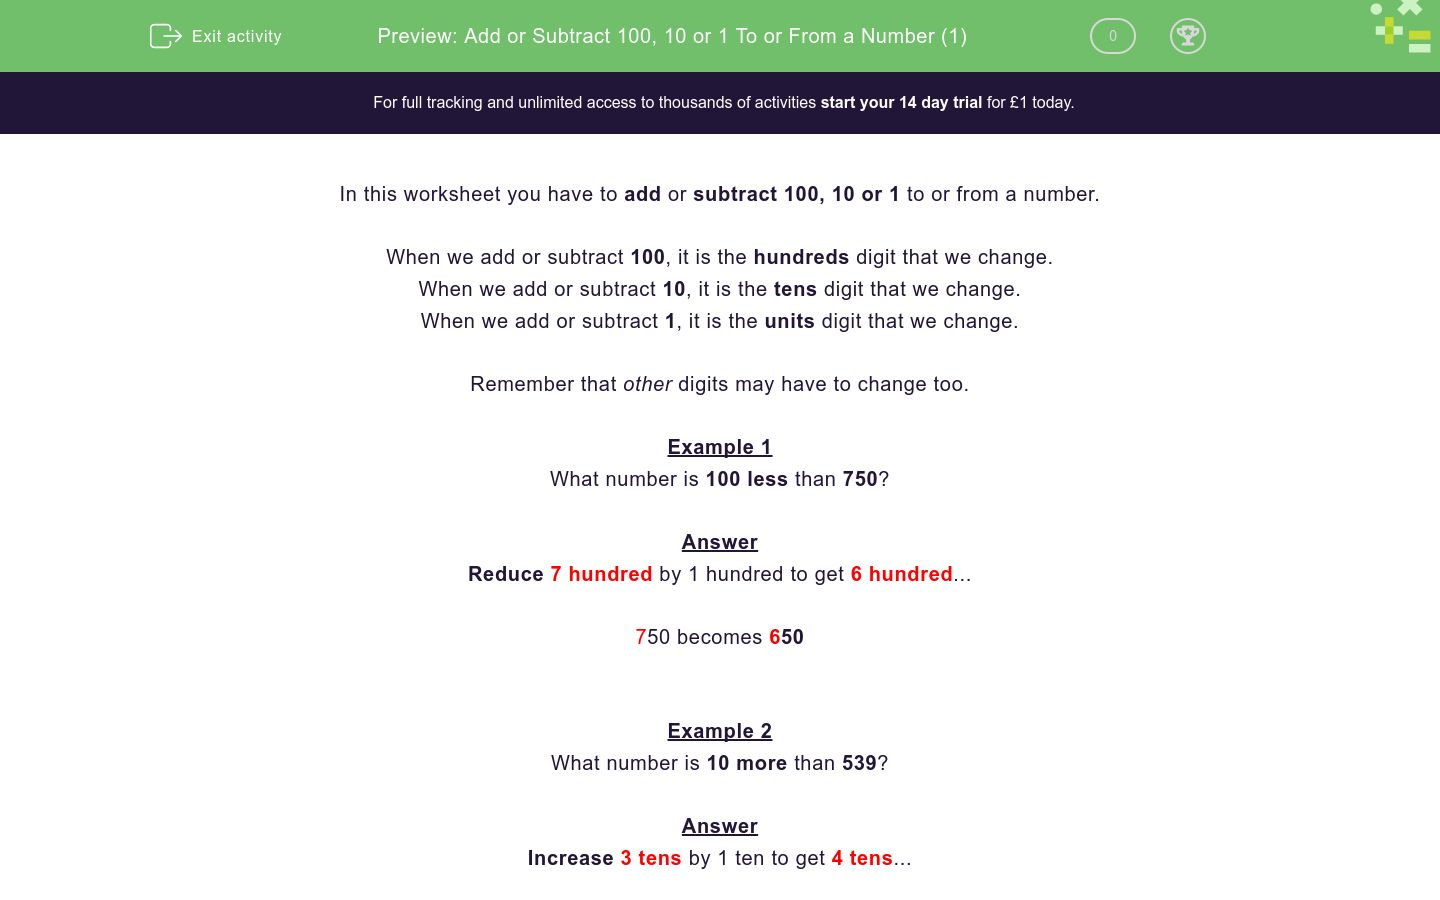 'Add or Subtract 100, 10 or 1 To or From a Number (1)' worksheet